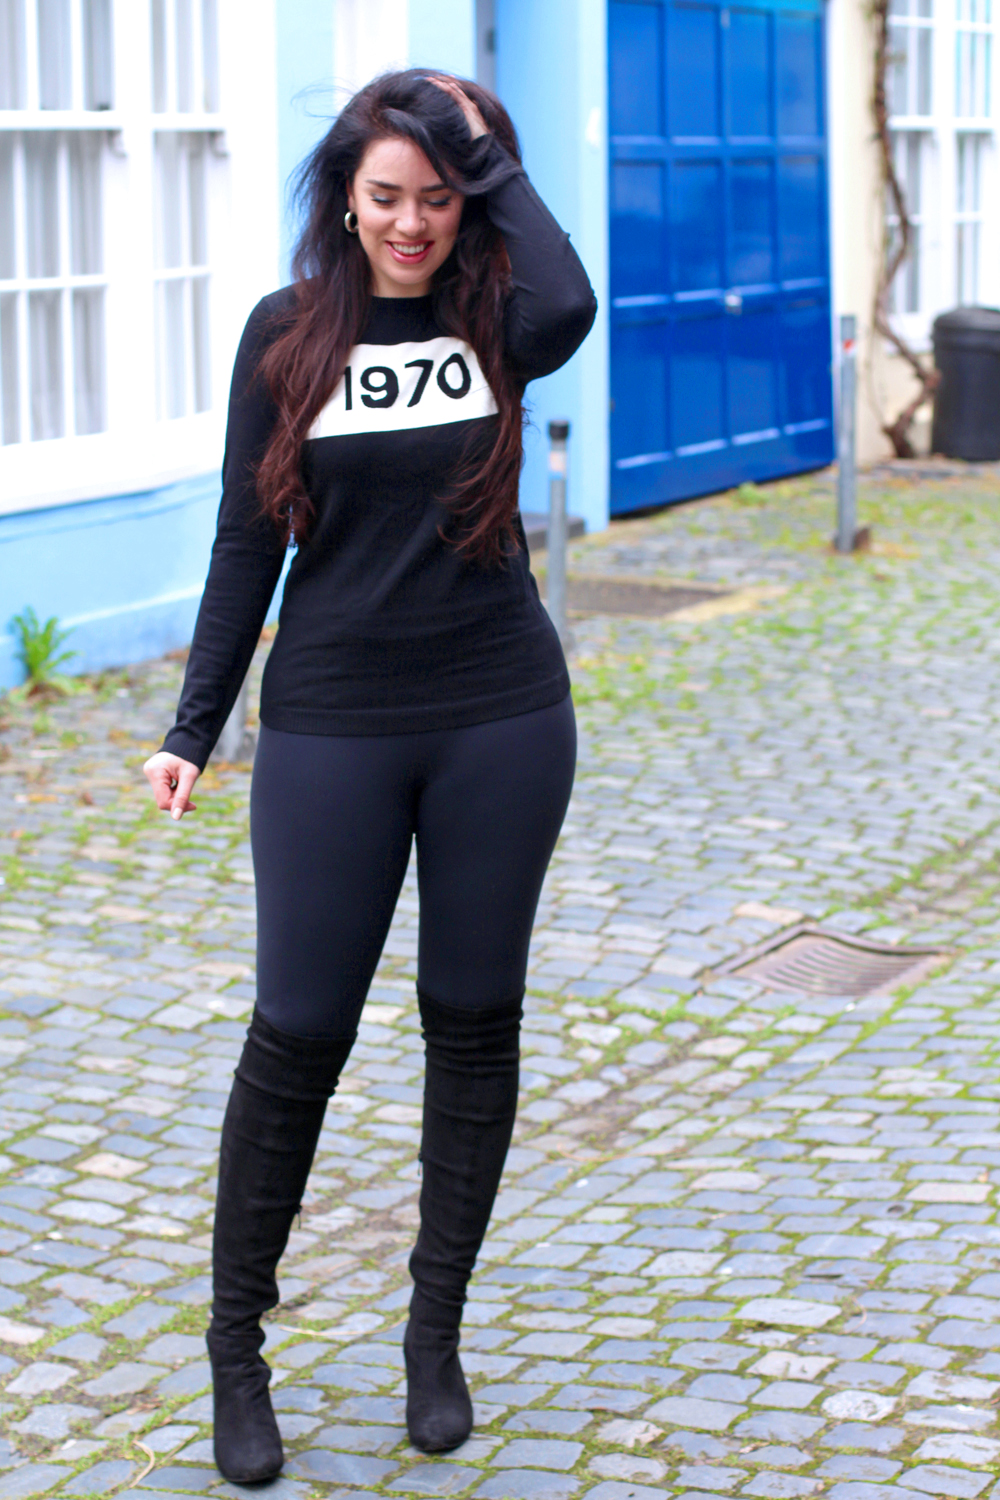 Black 1970 Bella Freud jumper on Emma Louise Layla - London style blogger